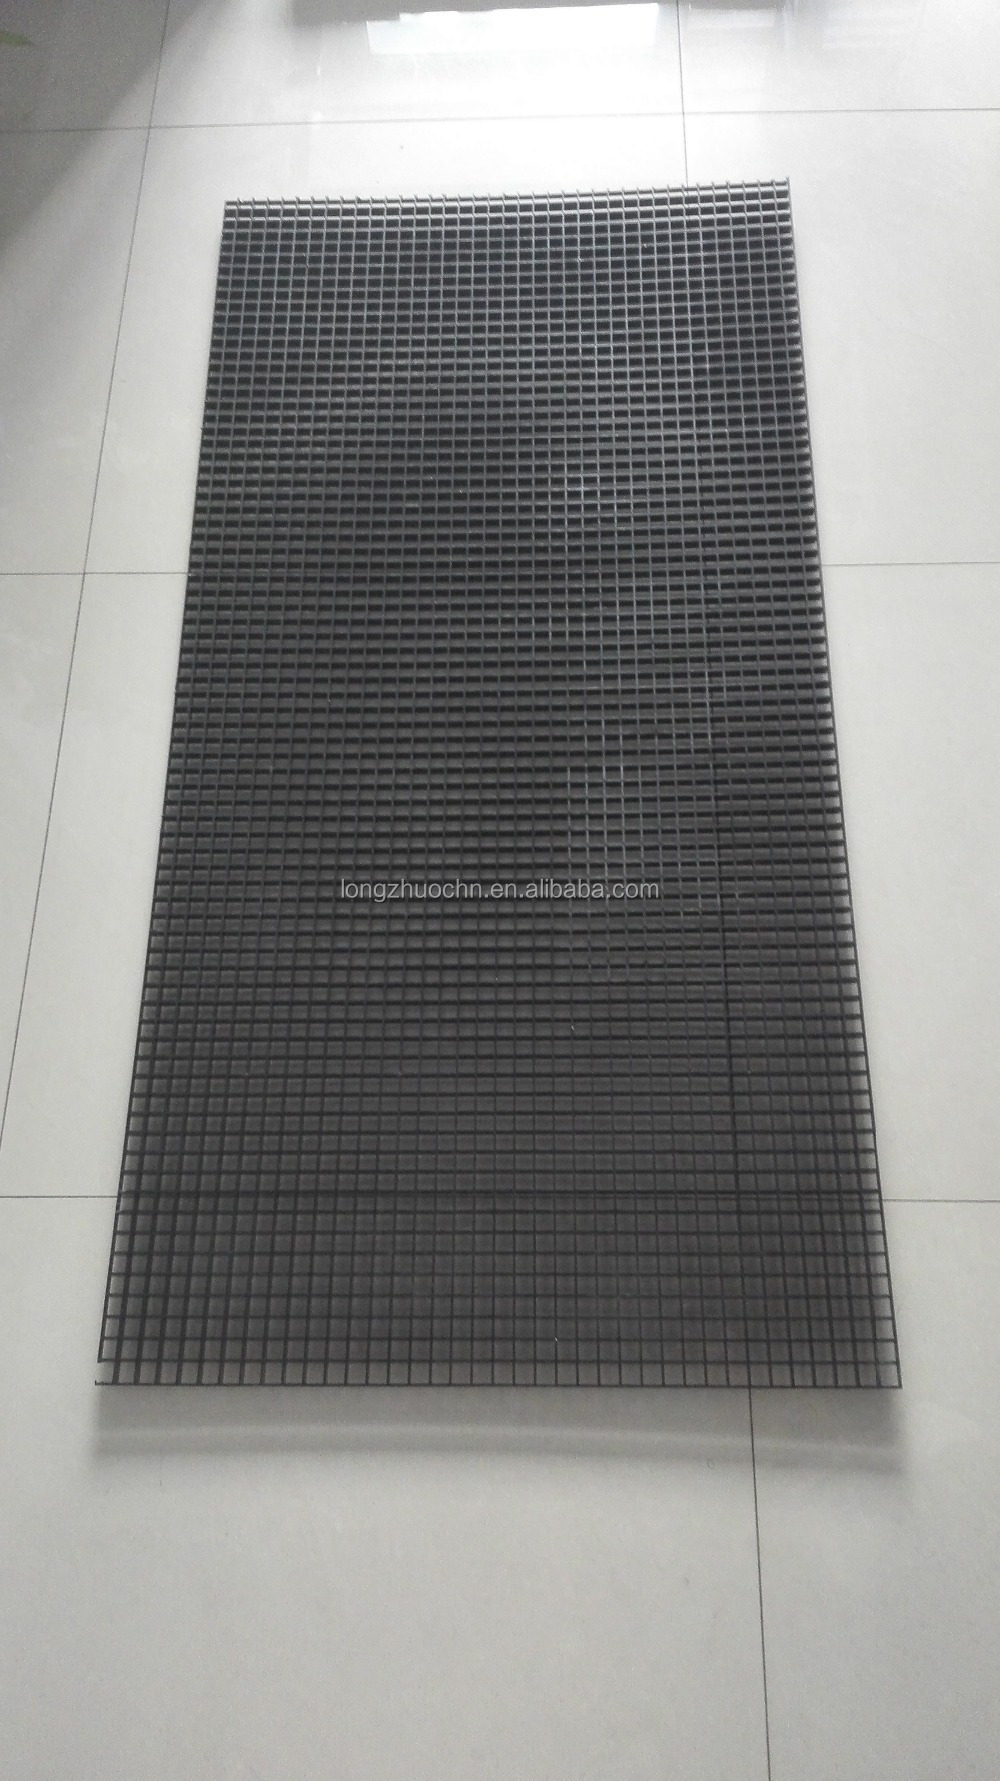 Plastic Floor Grilles, Eggcrate Grille, Egg Crate Grilling